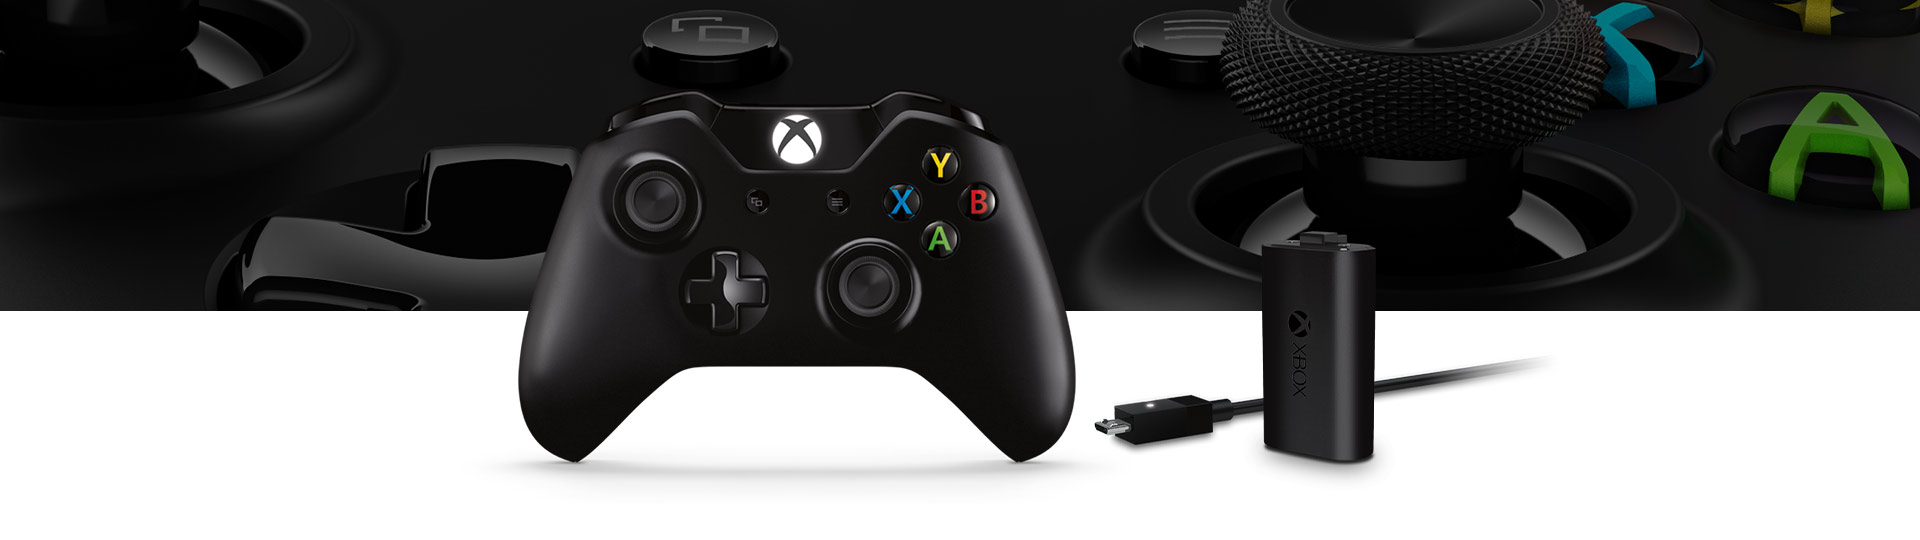 Manette sans fil Xbox One avec trousse de chargement Play and Charge